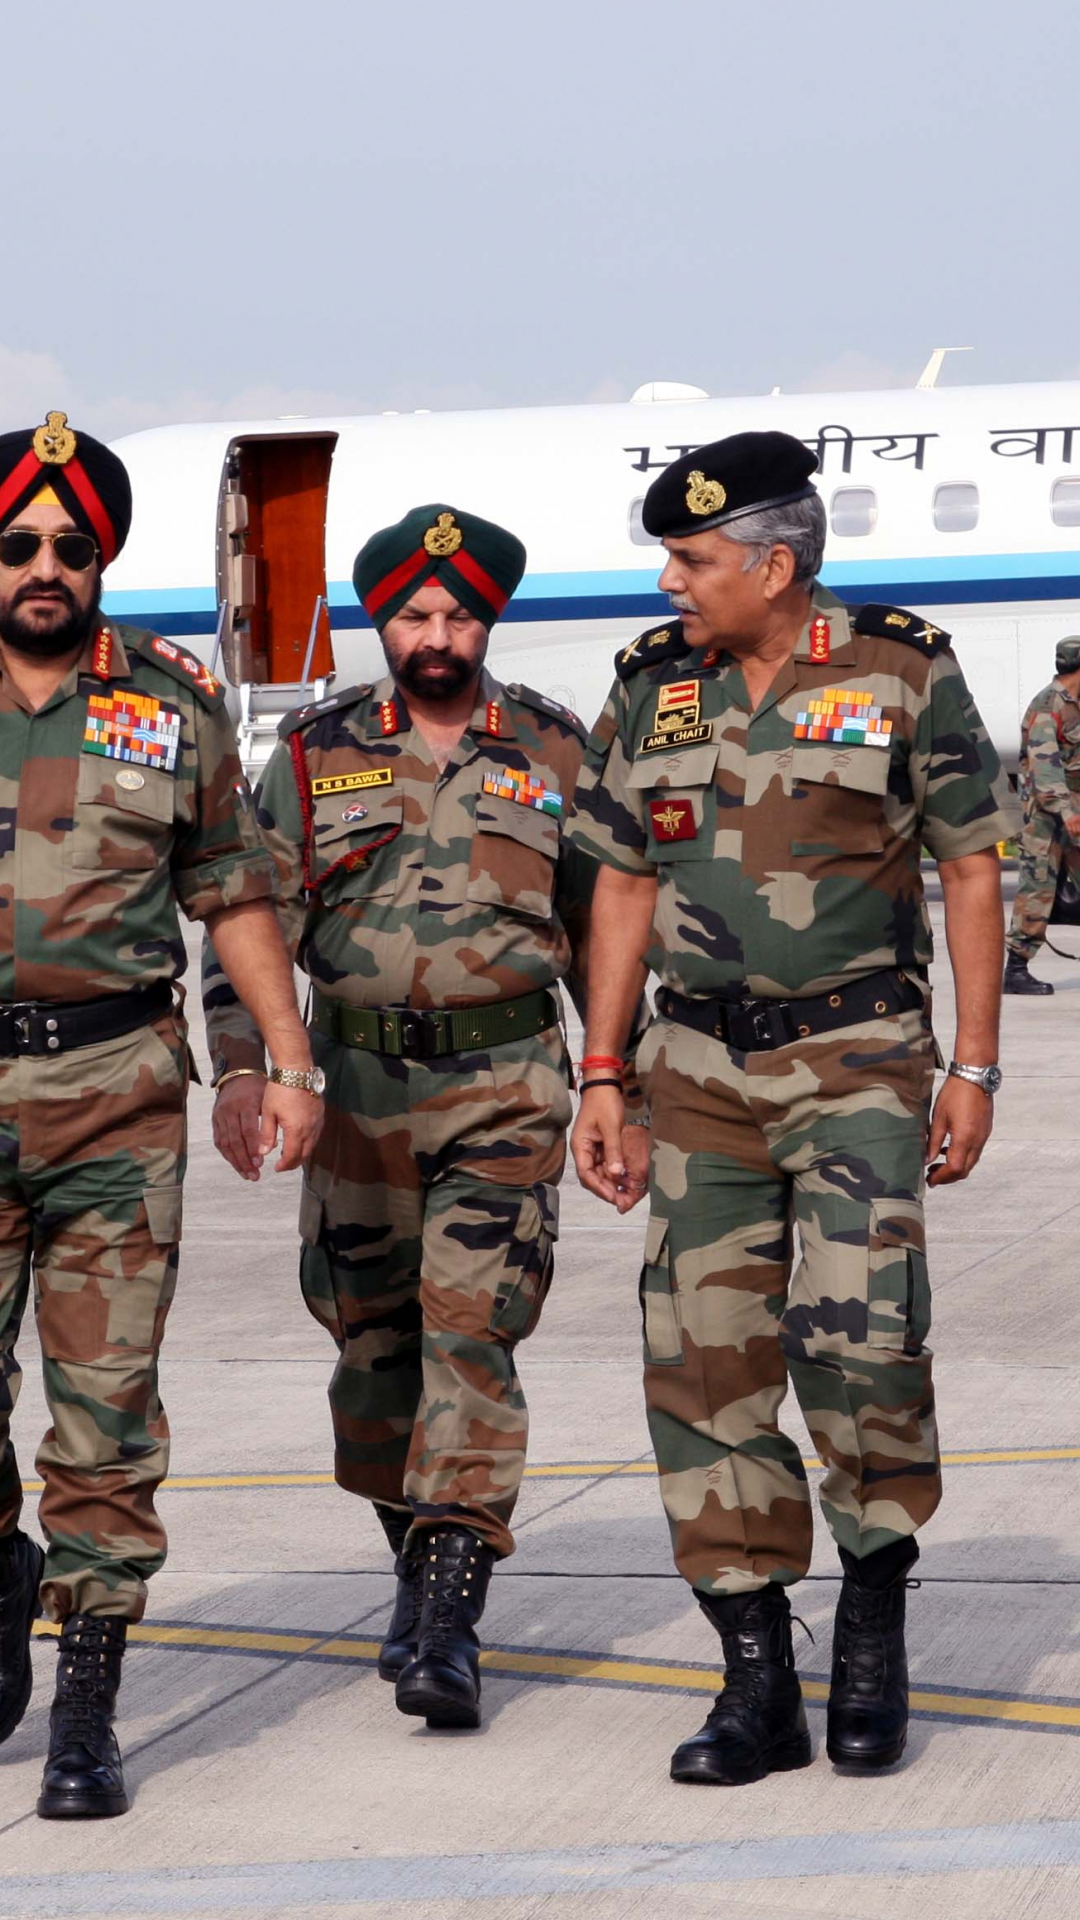 Free Download Download Indian Army Chief Gen Bikram Singh Desktop Wallpaper Hd 3084x2322 For Your Desktop Mobile Tablet Explore 48 Indian Army Hd Wallpaper Cool Army Wallpapers Hd Navy